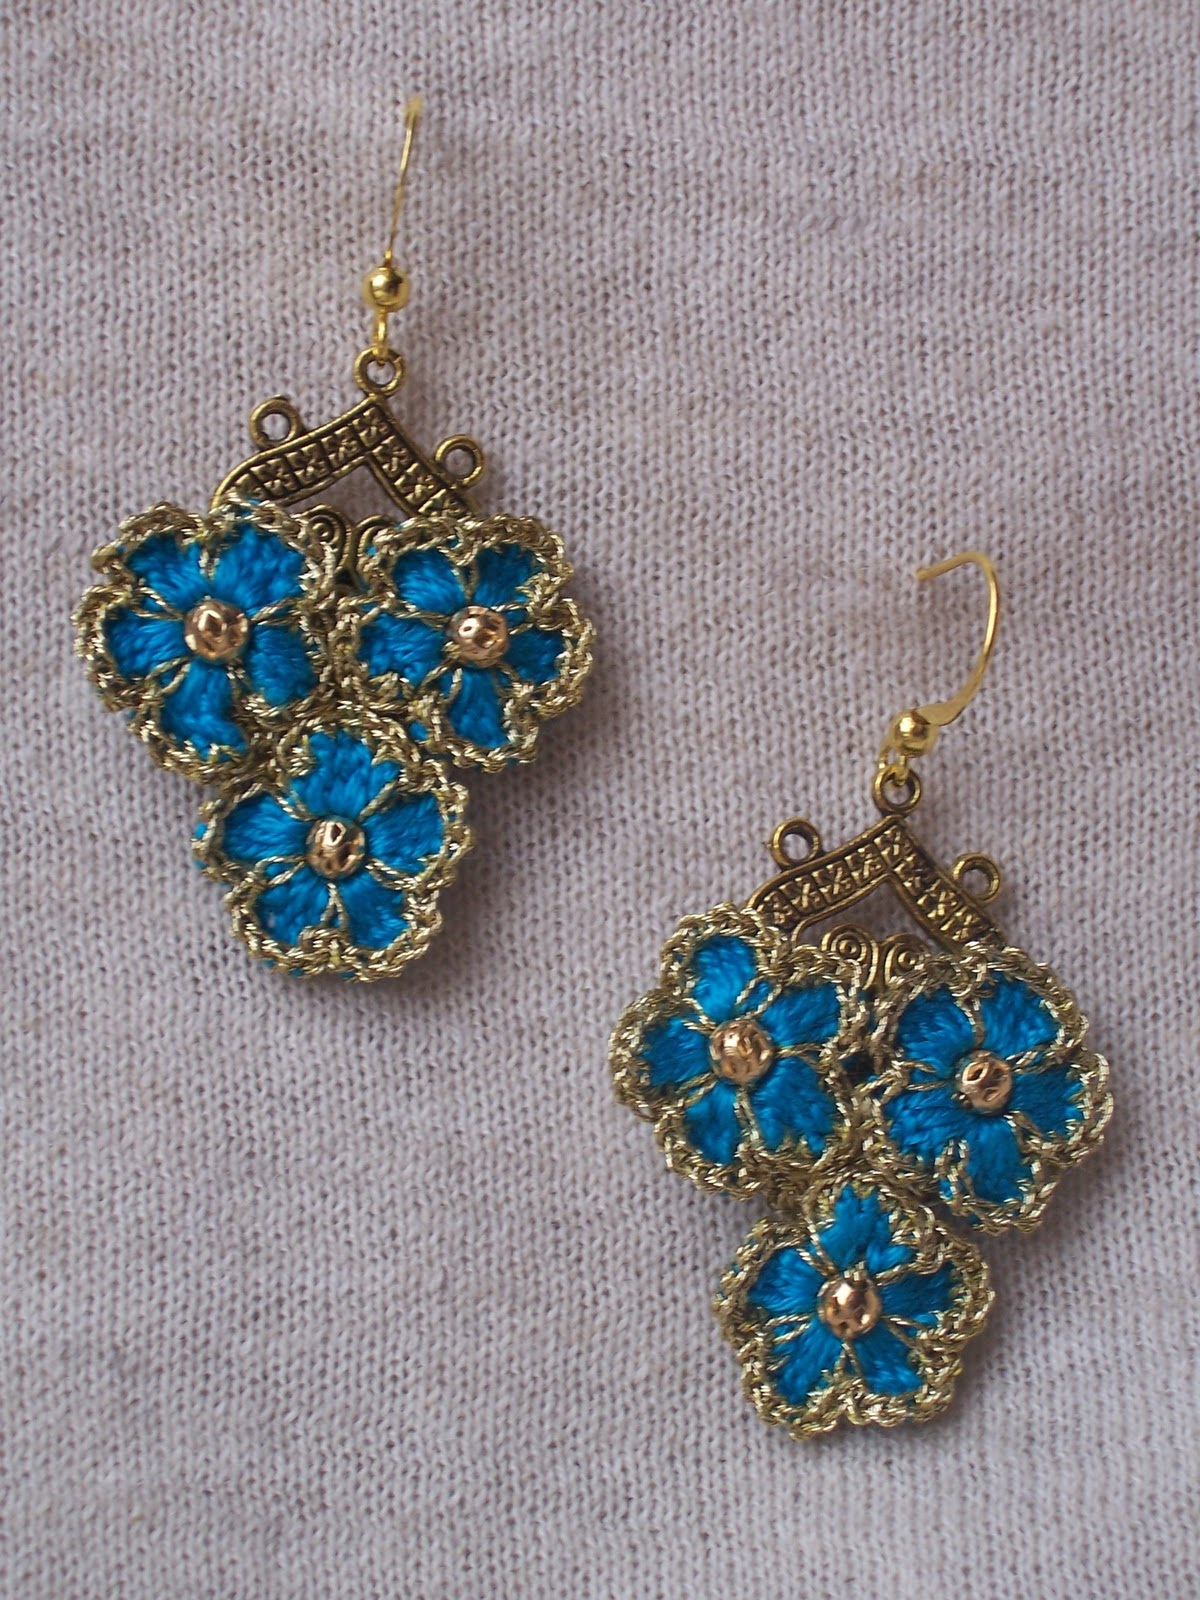 Crocheting Jewelry : Outstanding Crochet: Crochet Earrings Forget-me-not